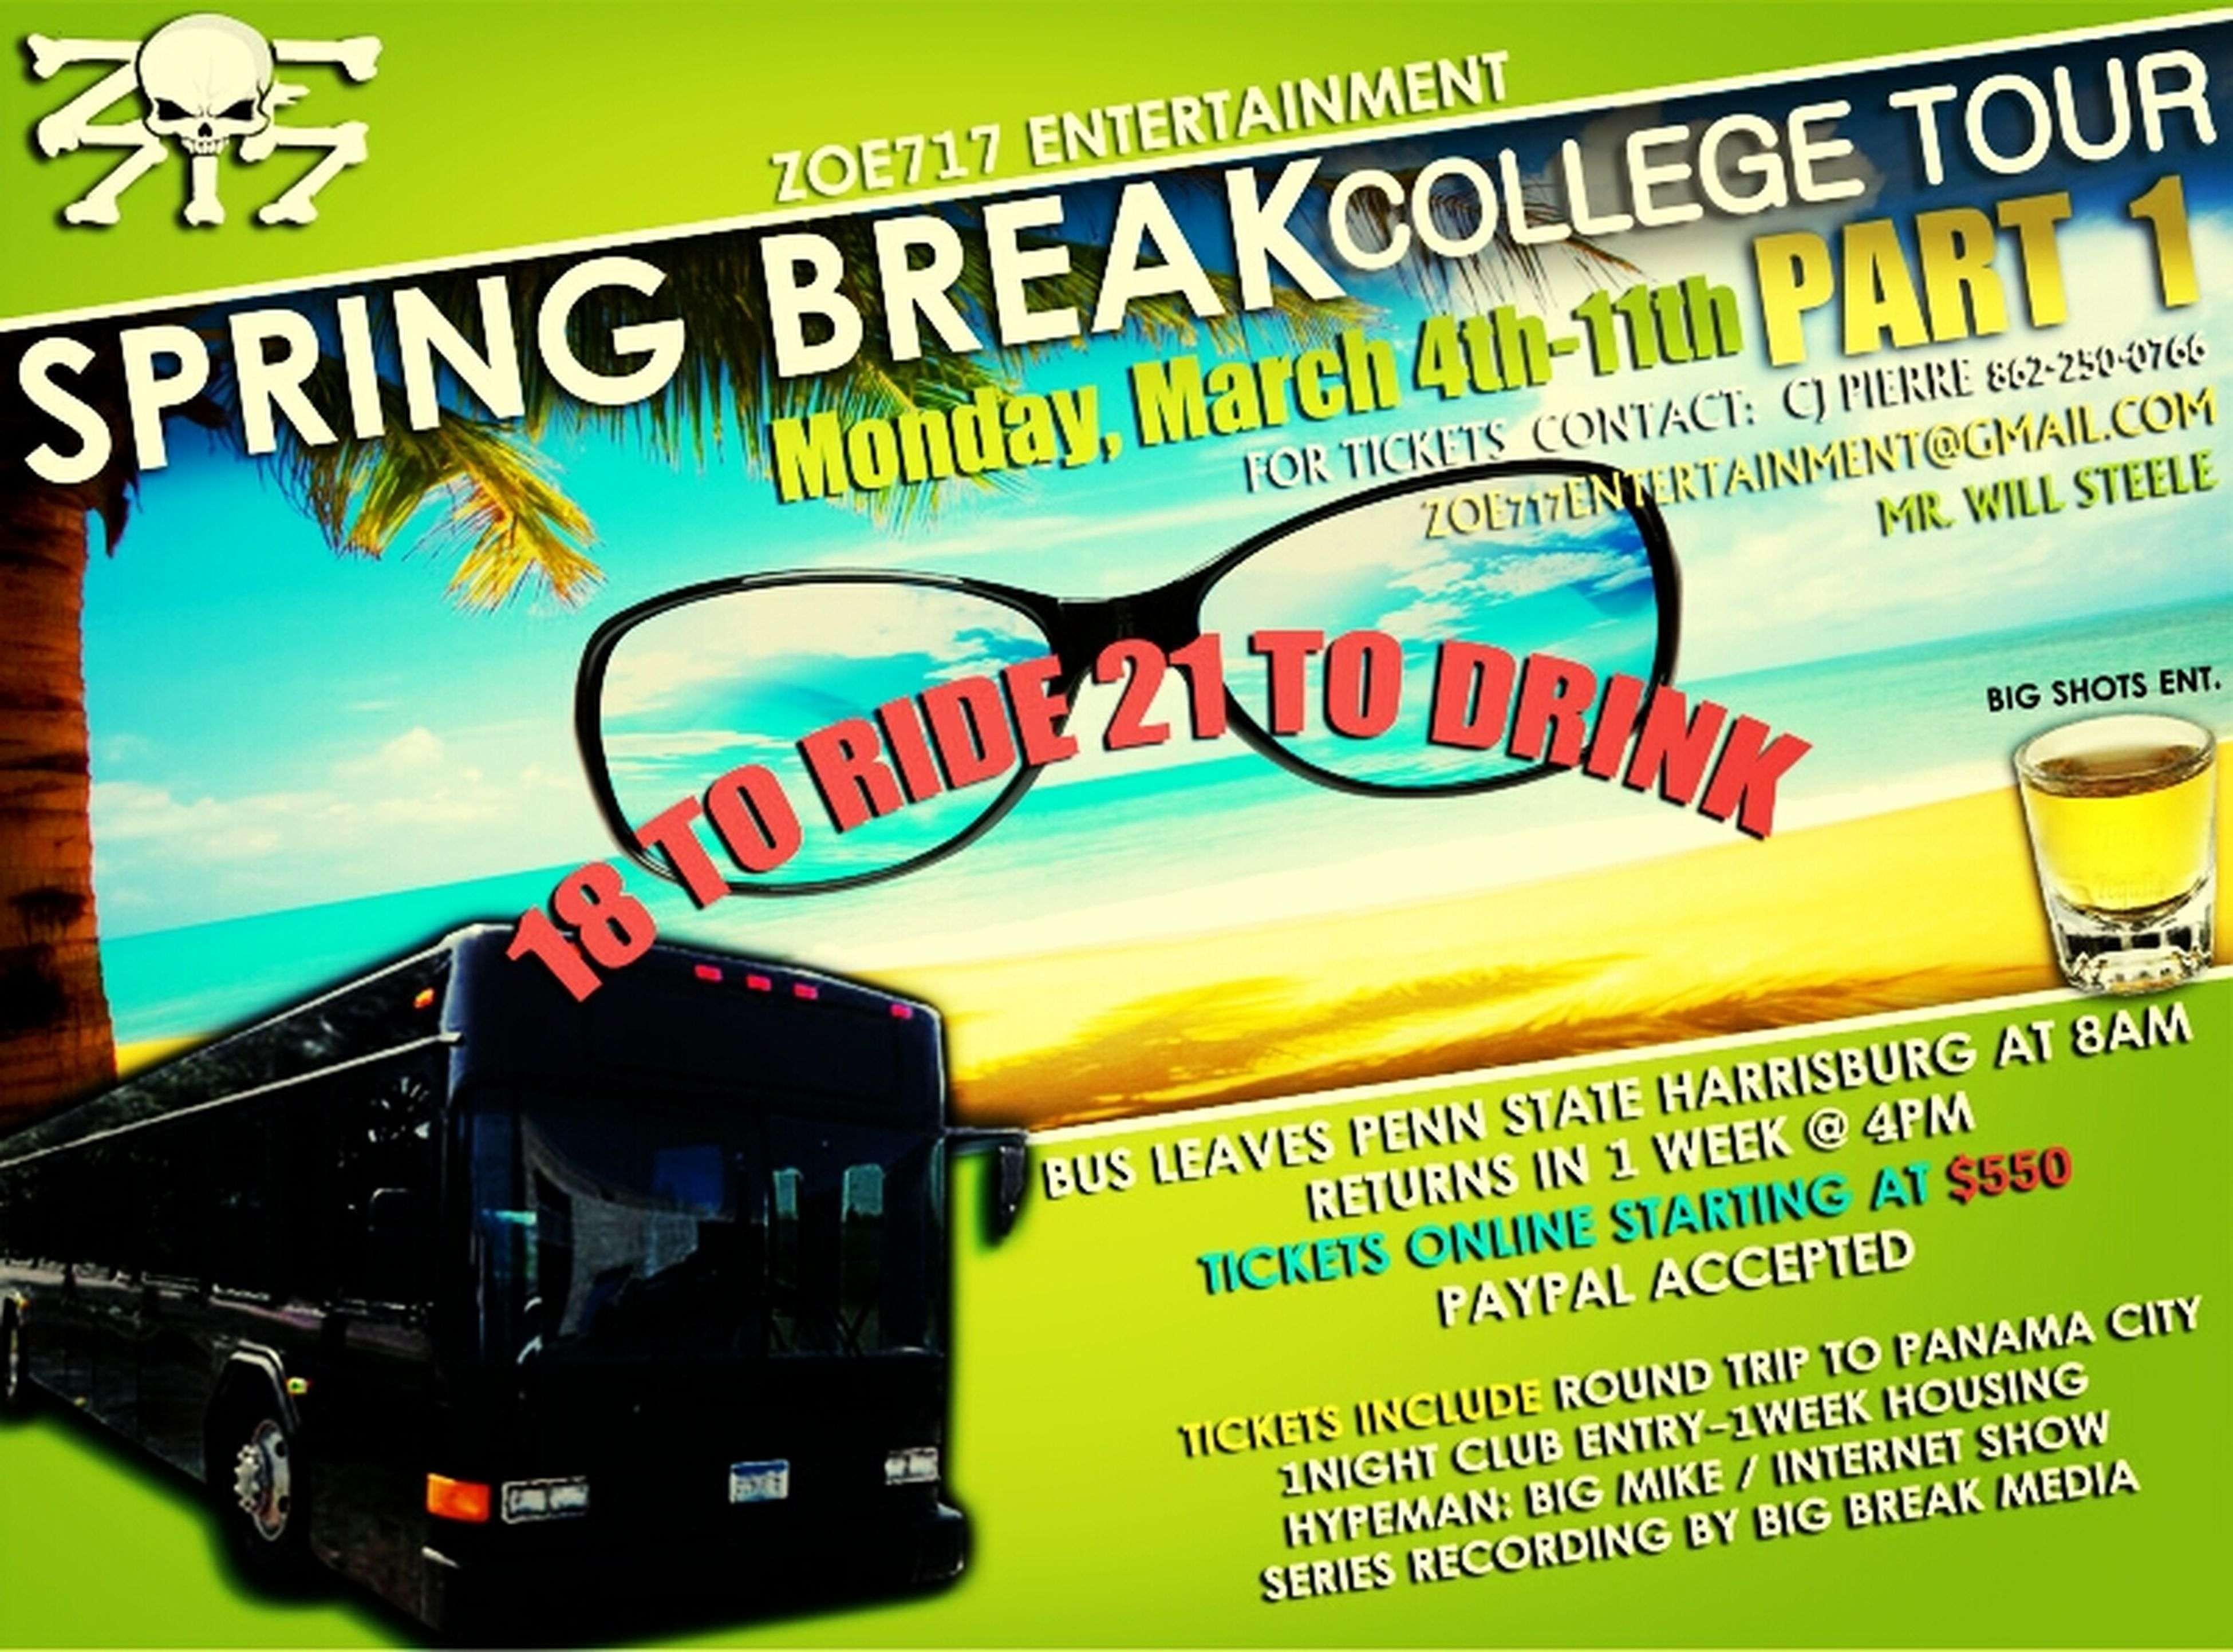 come #party with my team #Zoe717entertainment for #SpringBreak as we ride out to #Florida from #Pennsylvania , contact me for more info tickets selling fast so get urs today ! Party Partying Till Sunrise Roadtrip Party Hard Florida Panama City Pennsylvania South Beach Zoe717ent Zoe717entertainment